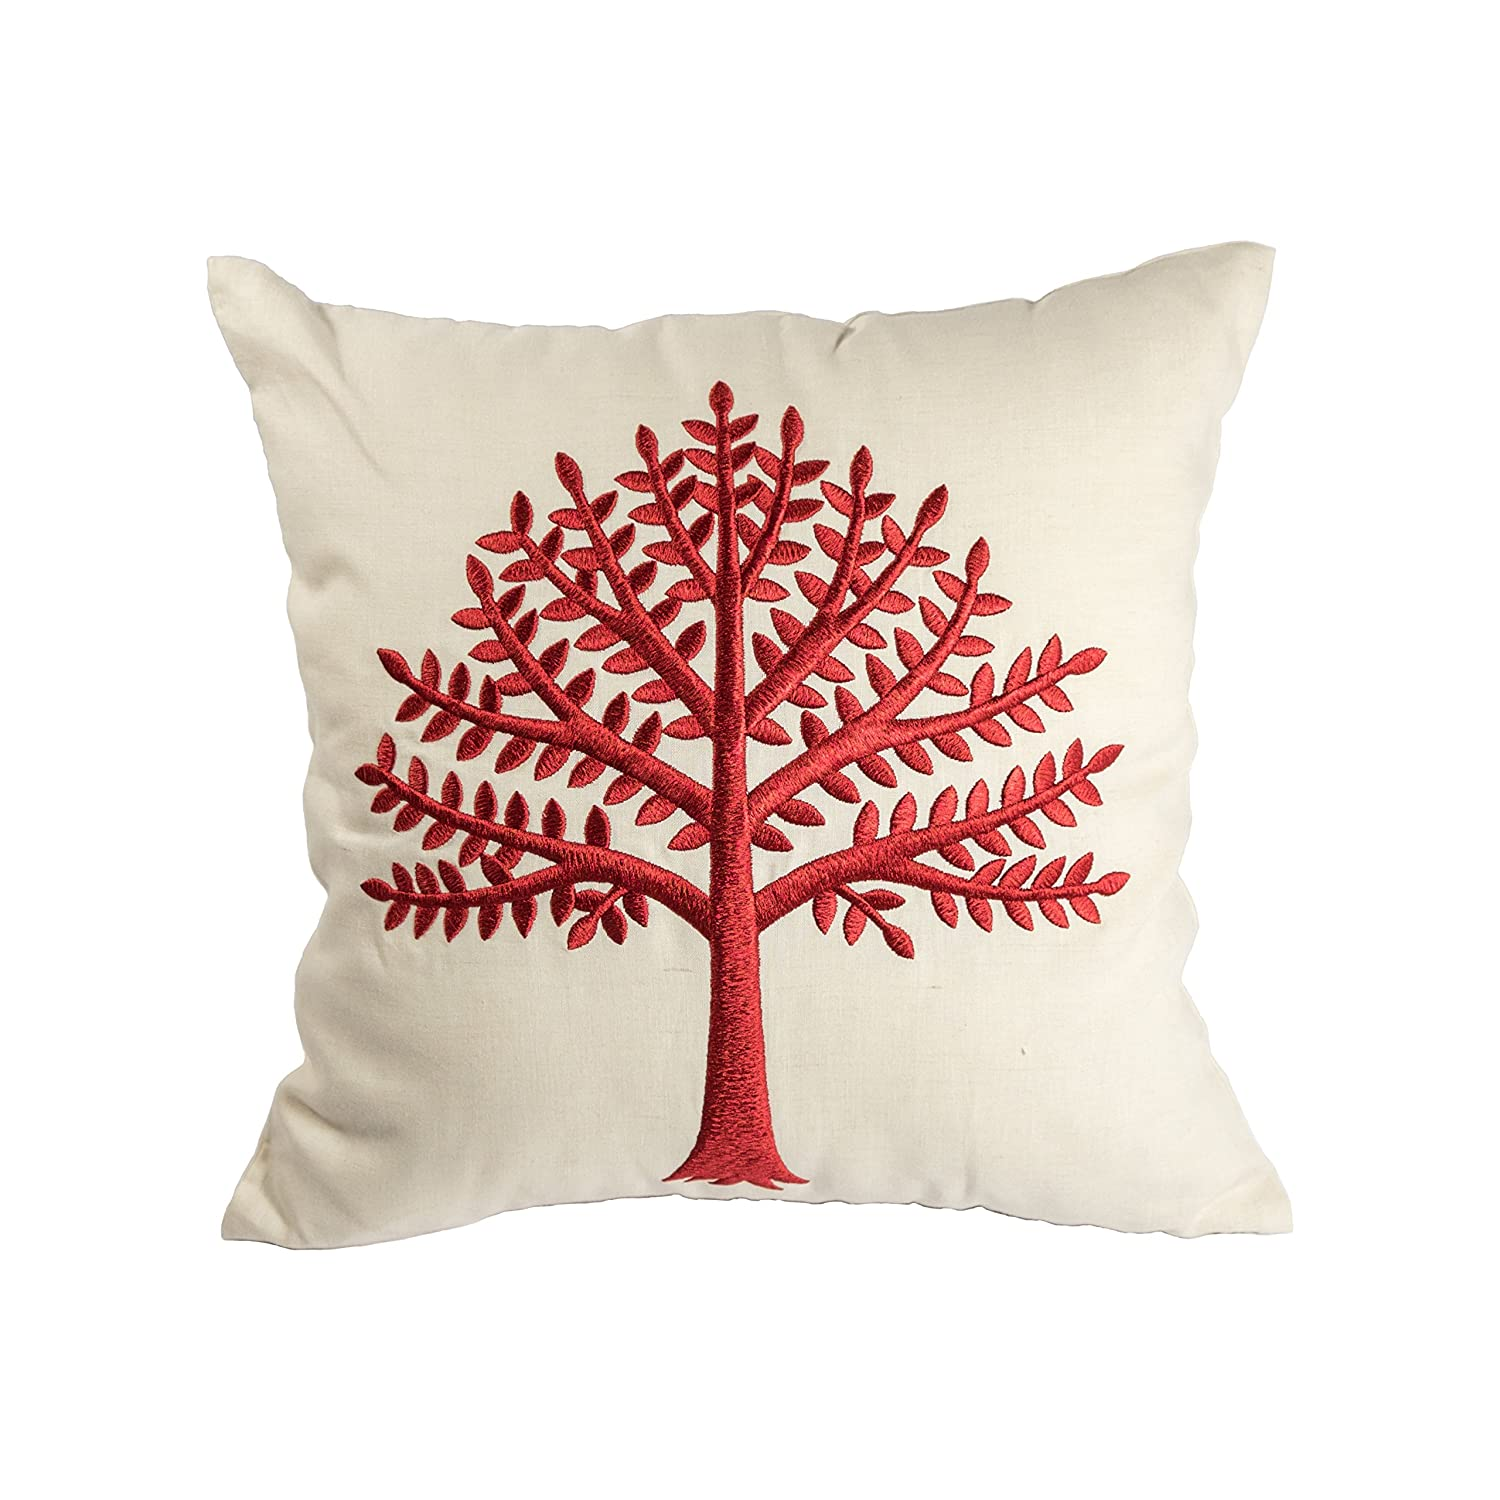 Tree of life pillow case red beige cotton linen embroidered cushion cover